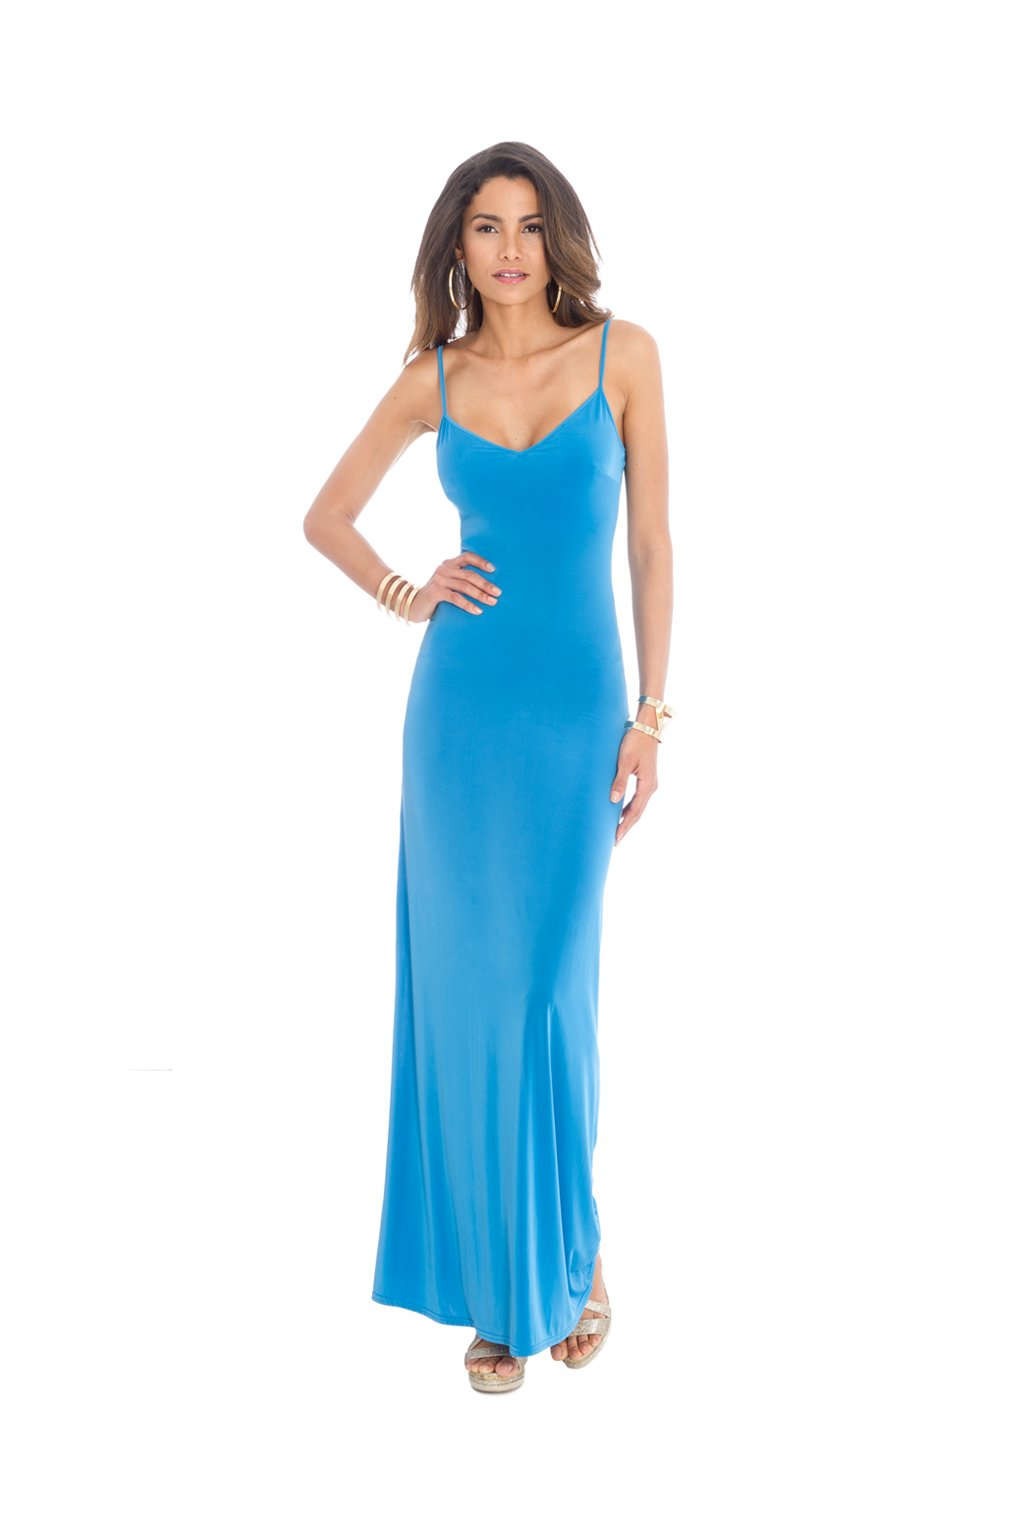 DR577 turquoise front l